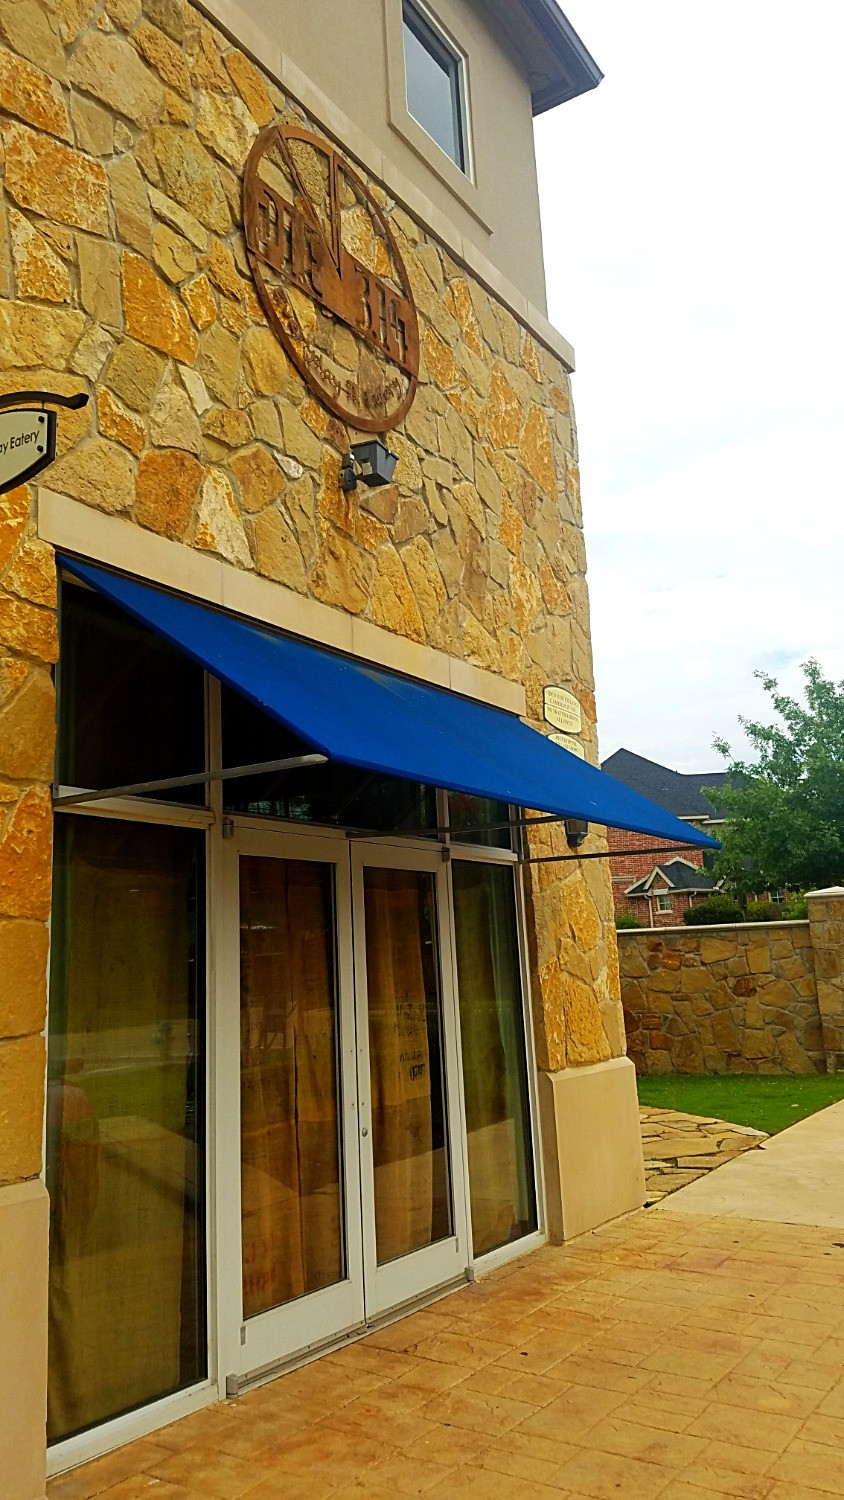 PIE 3.14 shines like a beacon in the middle of the Castle Hills neighborhood of Lewisville